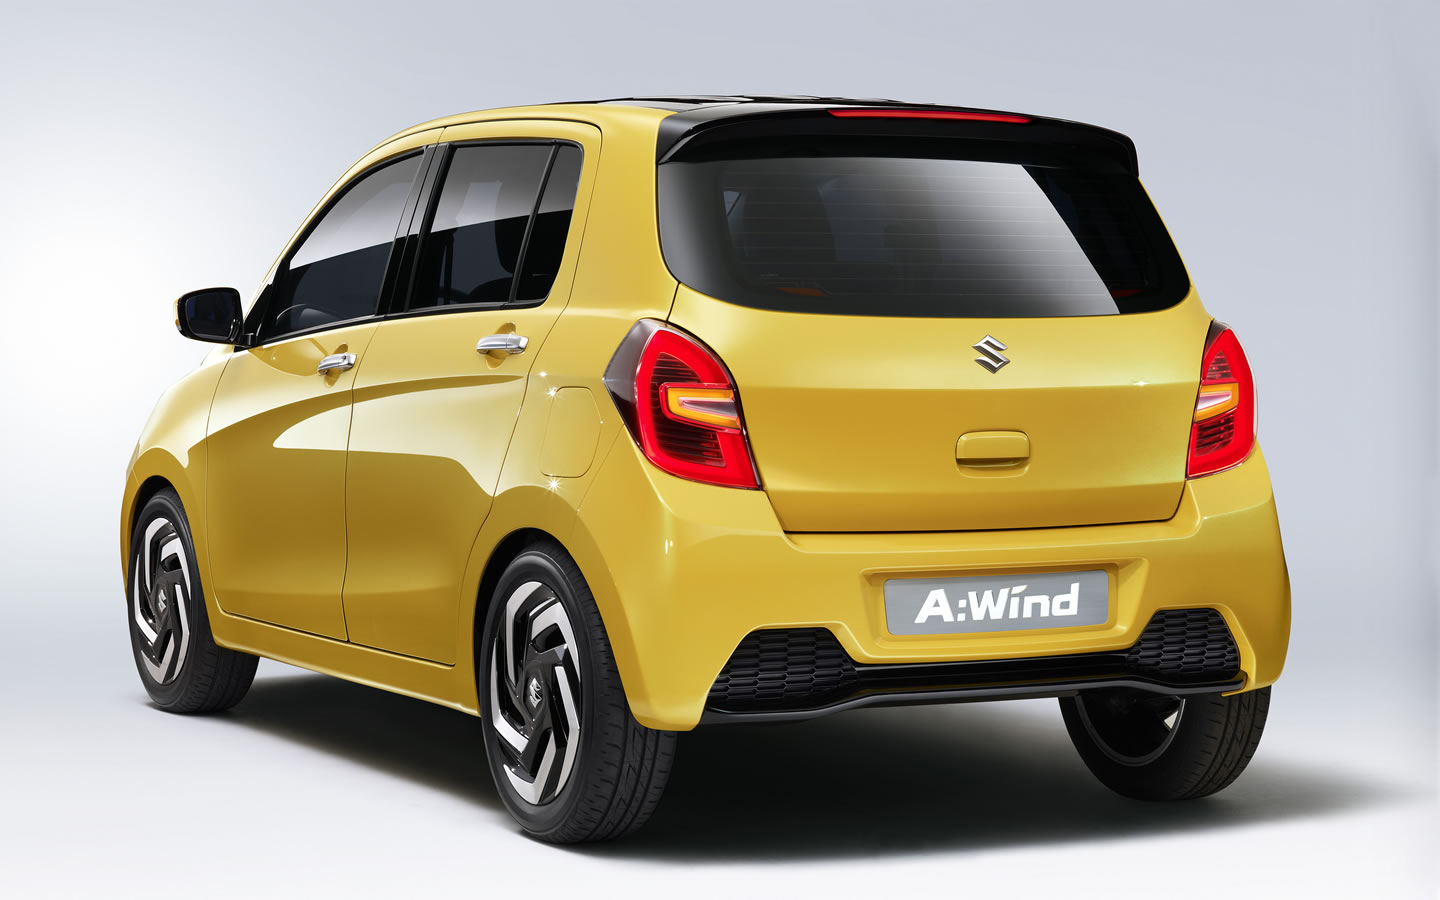 Suzuki-A-Wind-Concept-rear